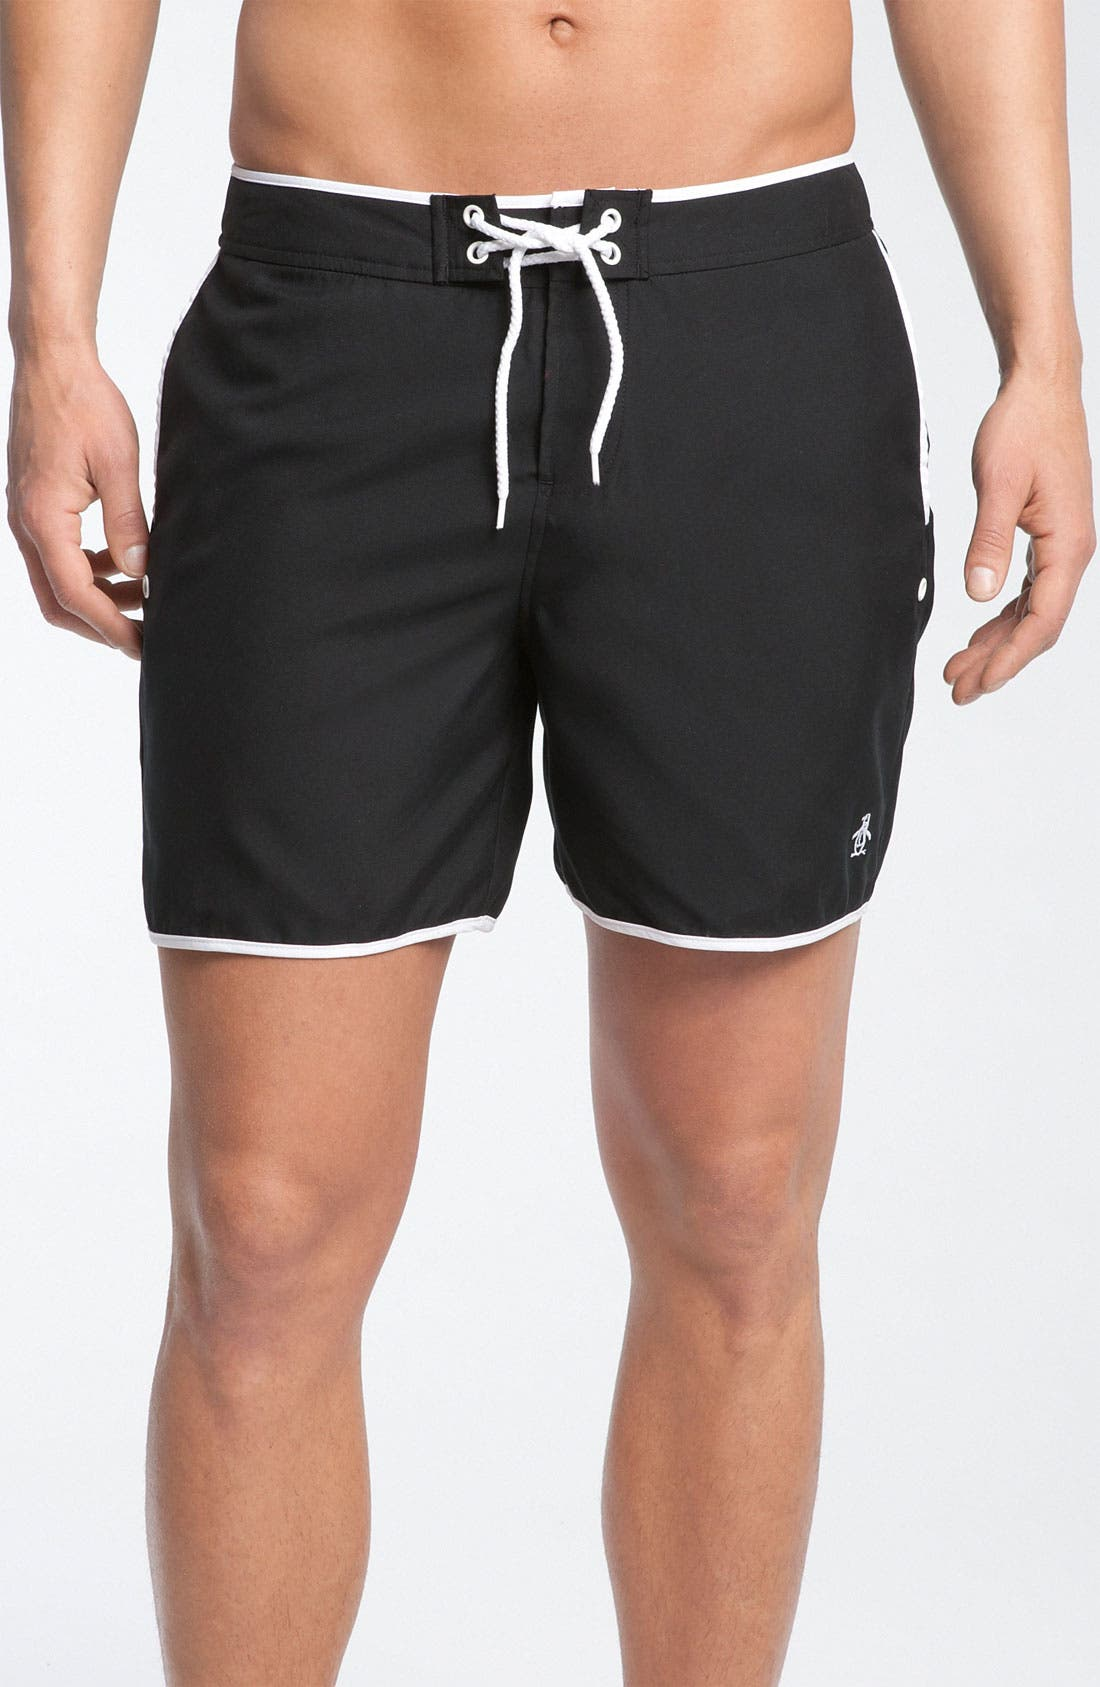 Alternate Image 1 Selected - Original Penguin Solid Volley Swim Shorts